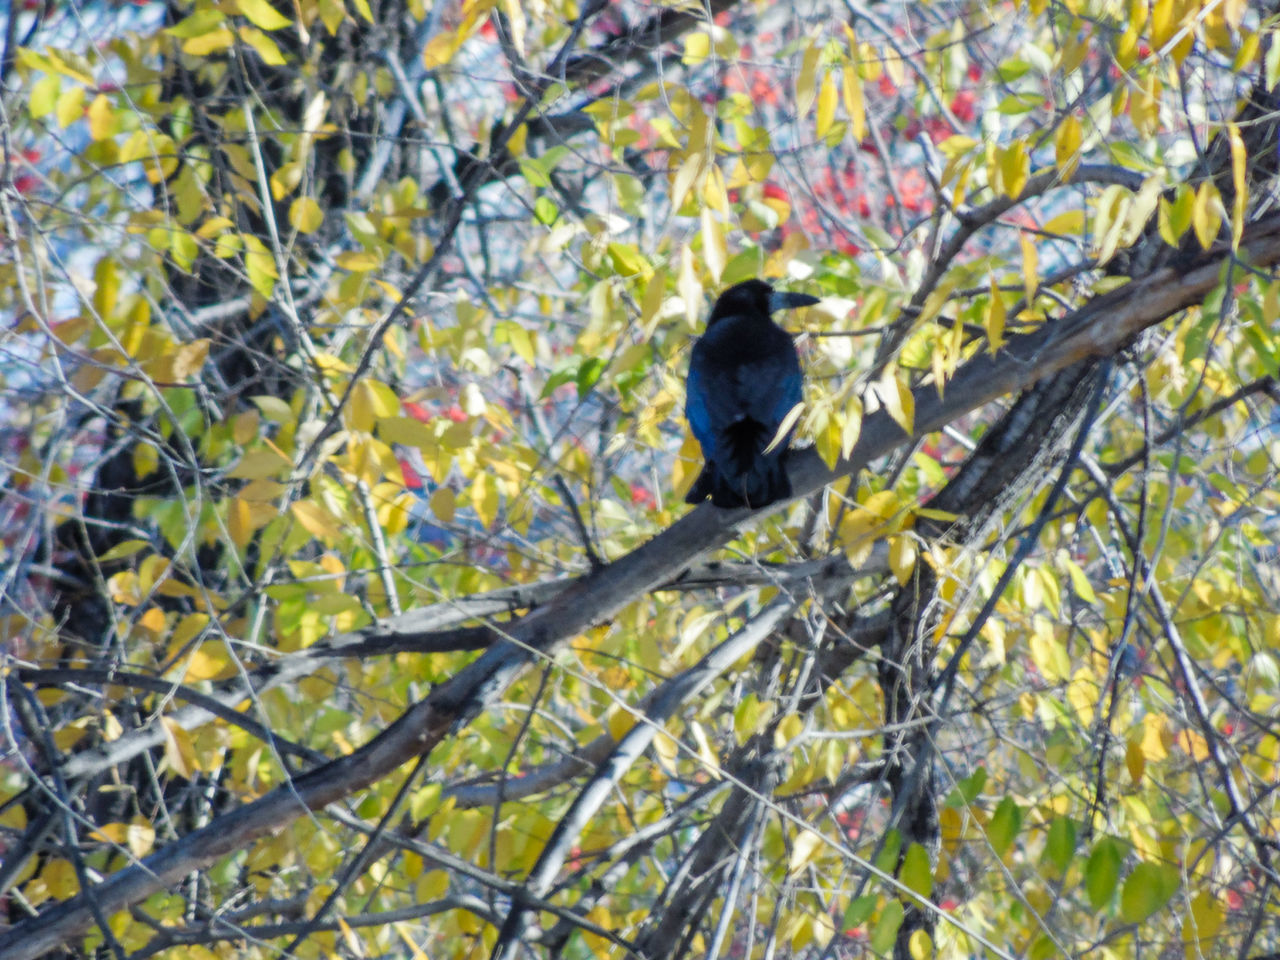 bird, branch, animal wildlife, one animal, animals in the wild, perching, tree, animal themes, nature, raven - bird, low angle view, no people, day, outdoors, blackbird, beauty in nature, full length, plant part, hornbill